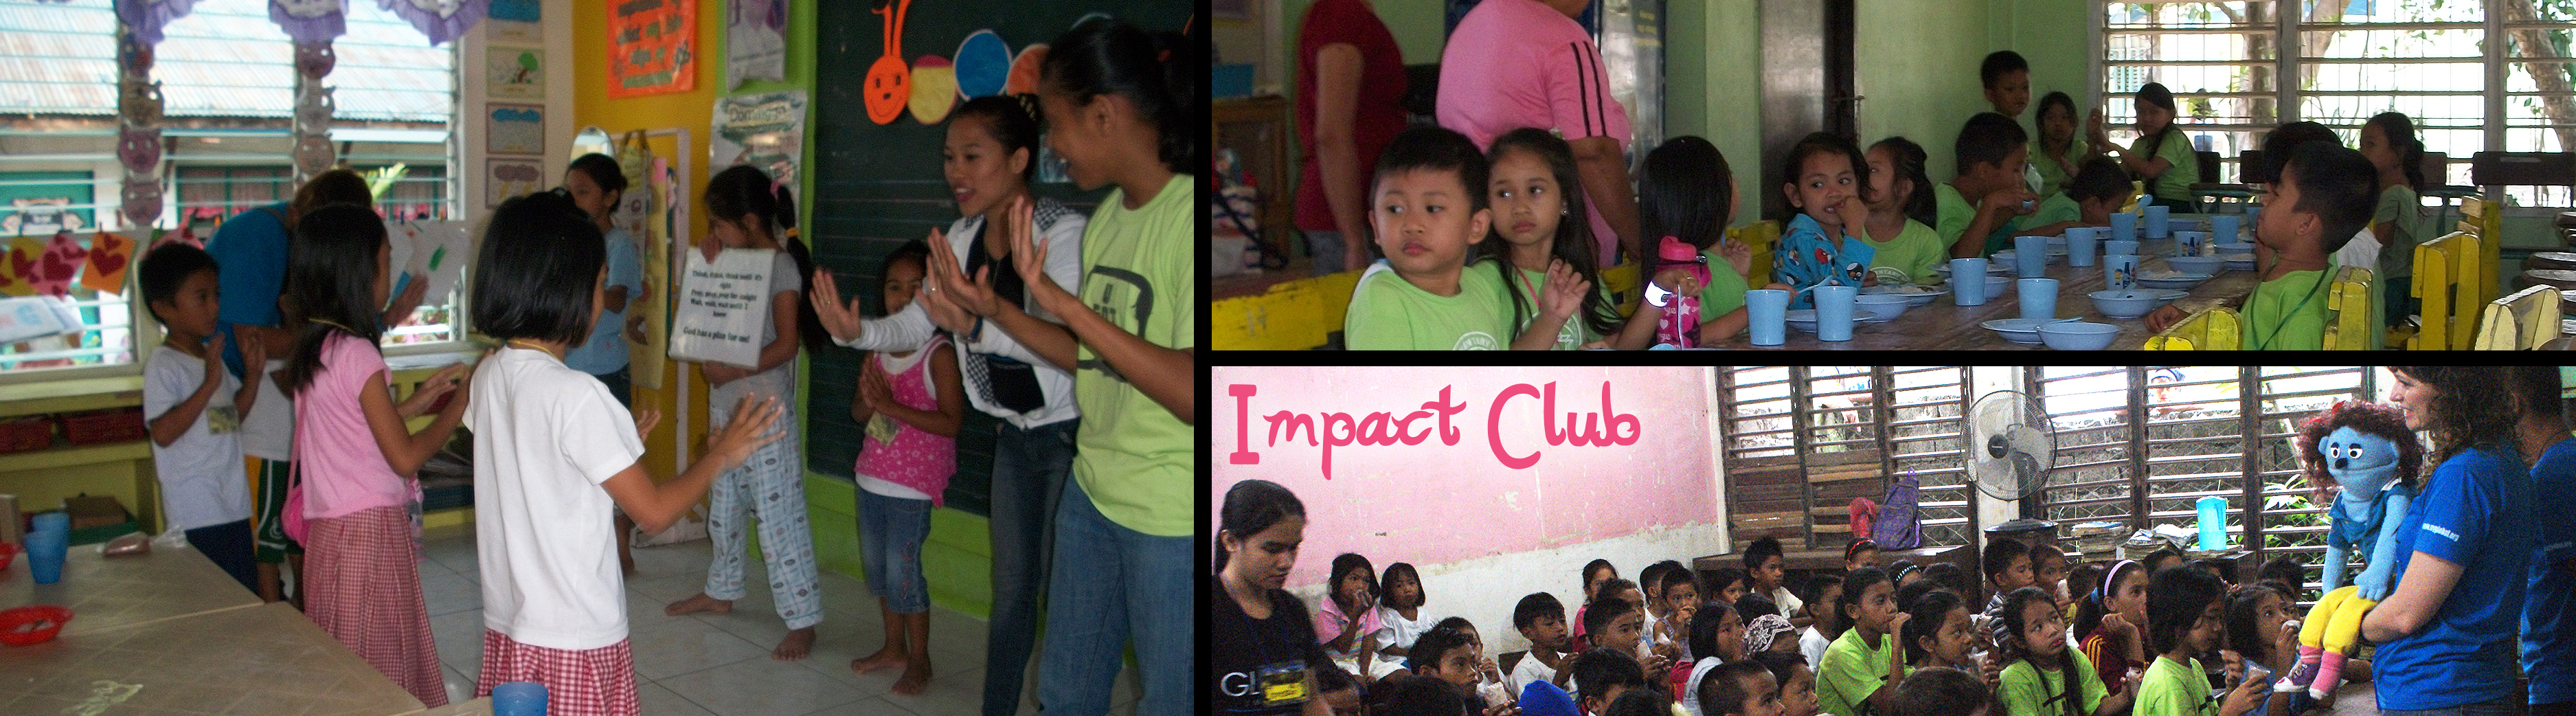 Impact Clubs -Human Trafficking Awareness Program